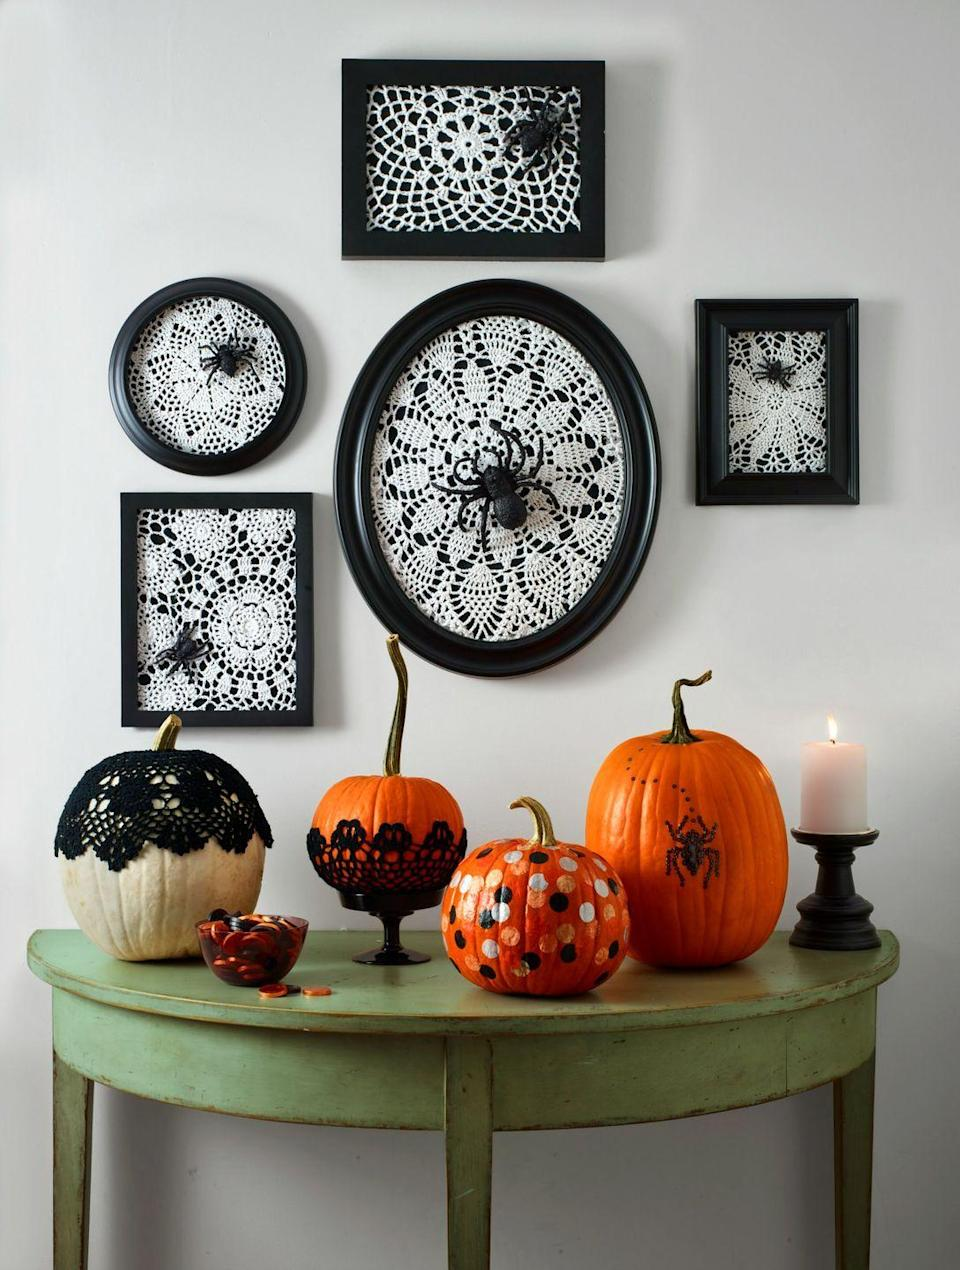 """<p>Frame a cotton doily and a plastic spider to honor Halloween's creepiest crawlies. </p><p><strong>What You'll Need:</strong> <a href=""""https://www.amazon.com/Silver-Embossed-Round-Cake-Board/dp/B079VGRP1B/ref=sr_1_5?dchild=1&keywords=doily&qid=1594917784&refinements=p_n_srvg_2947266011%3A3254098011&rnid=2947266011&sr=8-5&tag=syn-yahoo-20&ascsubtag=%5Bartid%7C10070.g.1279%5Bsrc%7Cyahoo-us"""" rel=""""nofollow noopener"""" target=""""_blank"""" data-ylk=""""slk:Doilies"""" class=""""link rapid-noclick-resp"""">Doilies</a> ($6, Amazon); <a href=""""https://www.amazon.com/U-S-Toy-Painted-Spiders-Package/dp/B00DEZQ5IE/ref=sr_1_10?dchild=1&keywords=plastic+spider&qid=1594918182&sr=8-10&tag=syn-yahoo-20&ascsubtag=%5Bartid%7C10070.g.1279%5Bsrc%7Cyahoo-us"""" rel=""""nofollow noopener"""" target=""""_blank"""" data-ylk=""""slk:plastic spiders"""" class=""""link rapid-noclick-resp"""">plastic spiders </a>($3, Amazon)</p>"""